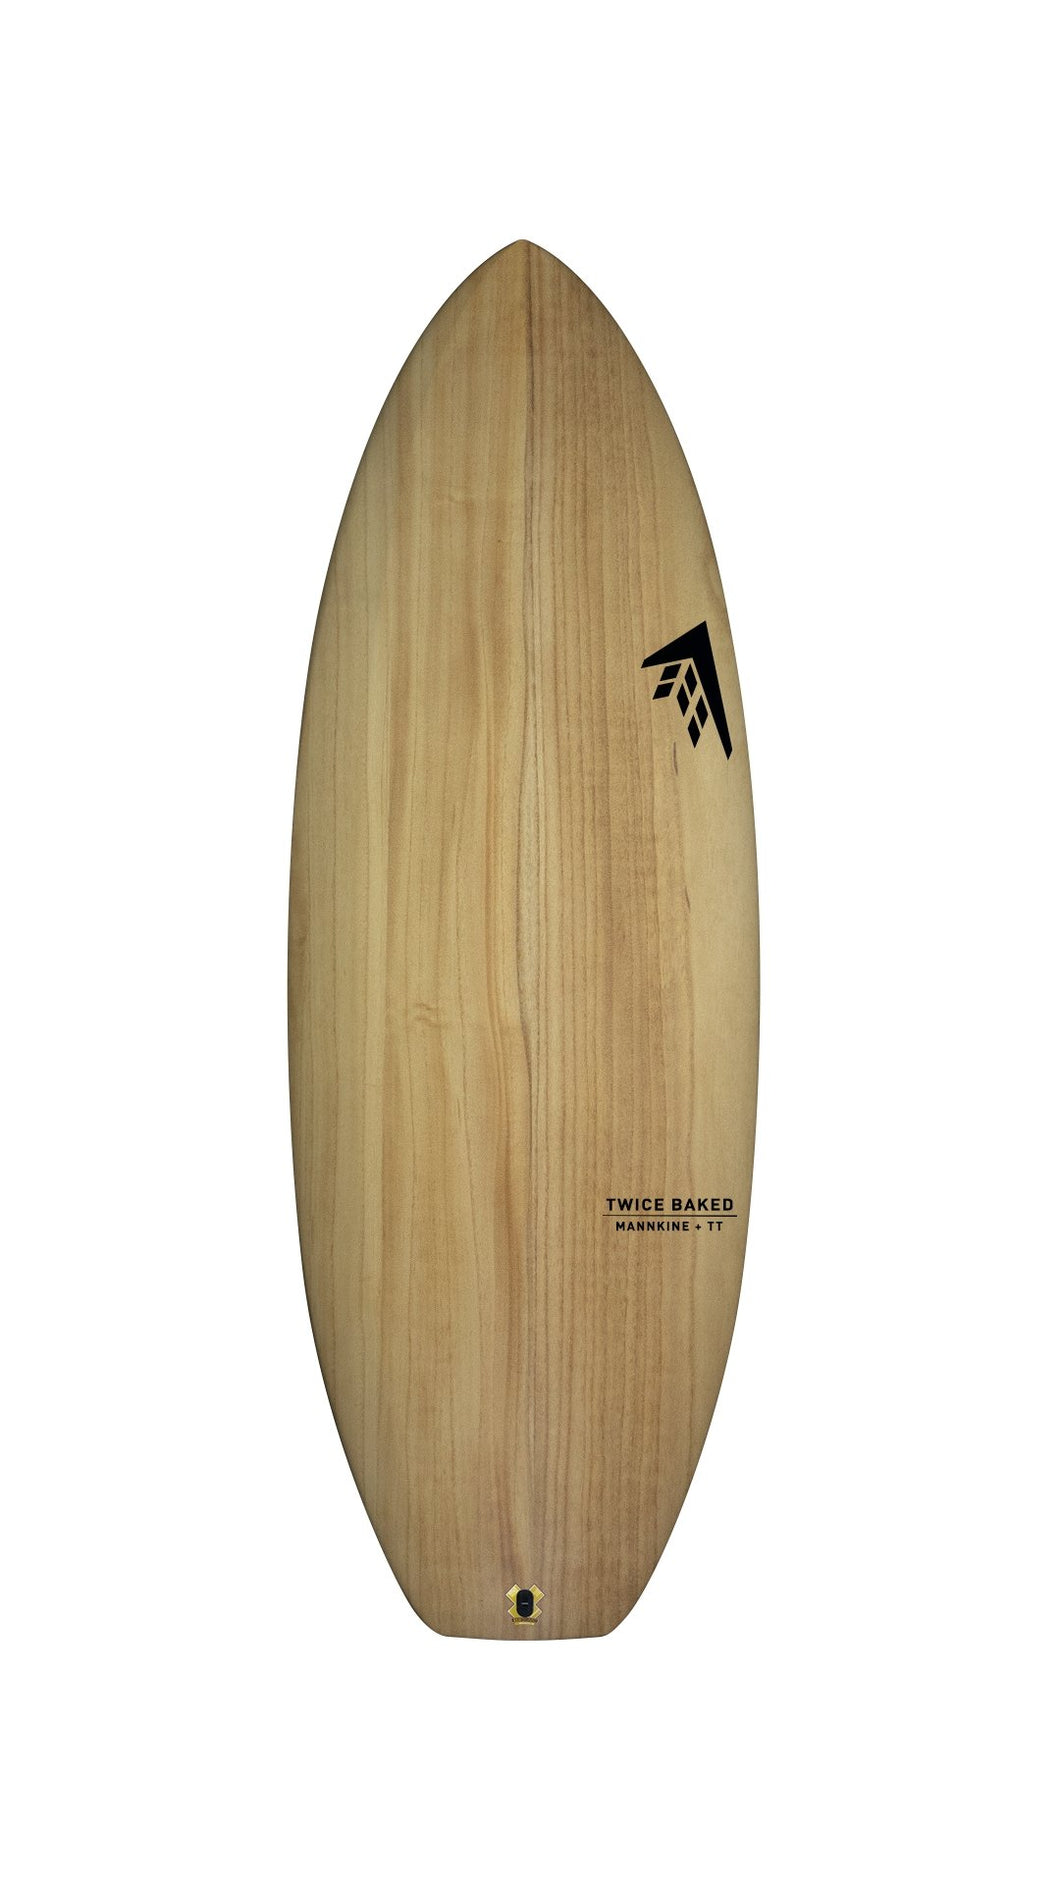 Firewire Twice Baked 2021 - KS Boardriders | Philippines Online Branded Clothes & Surf Shop